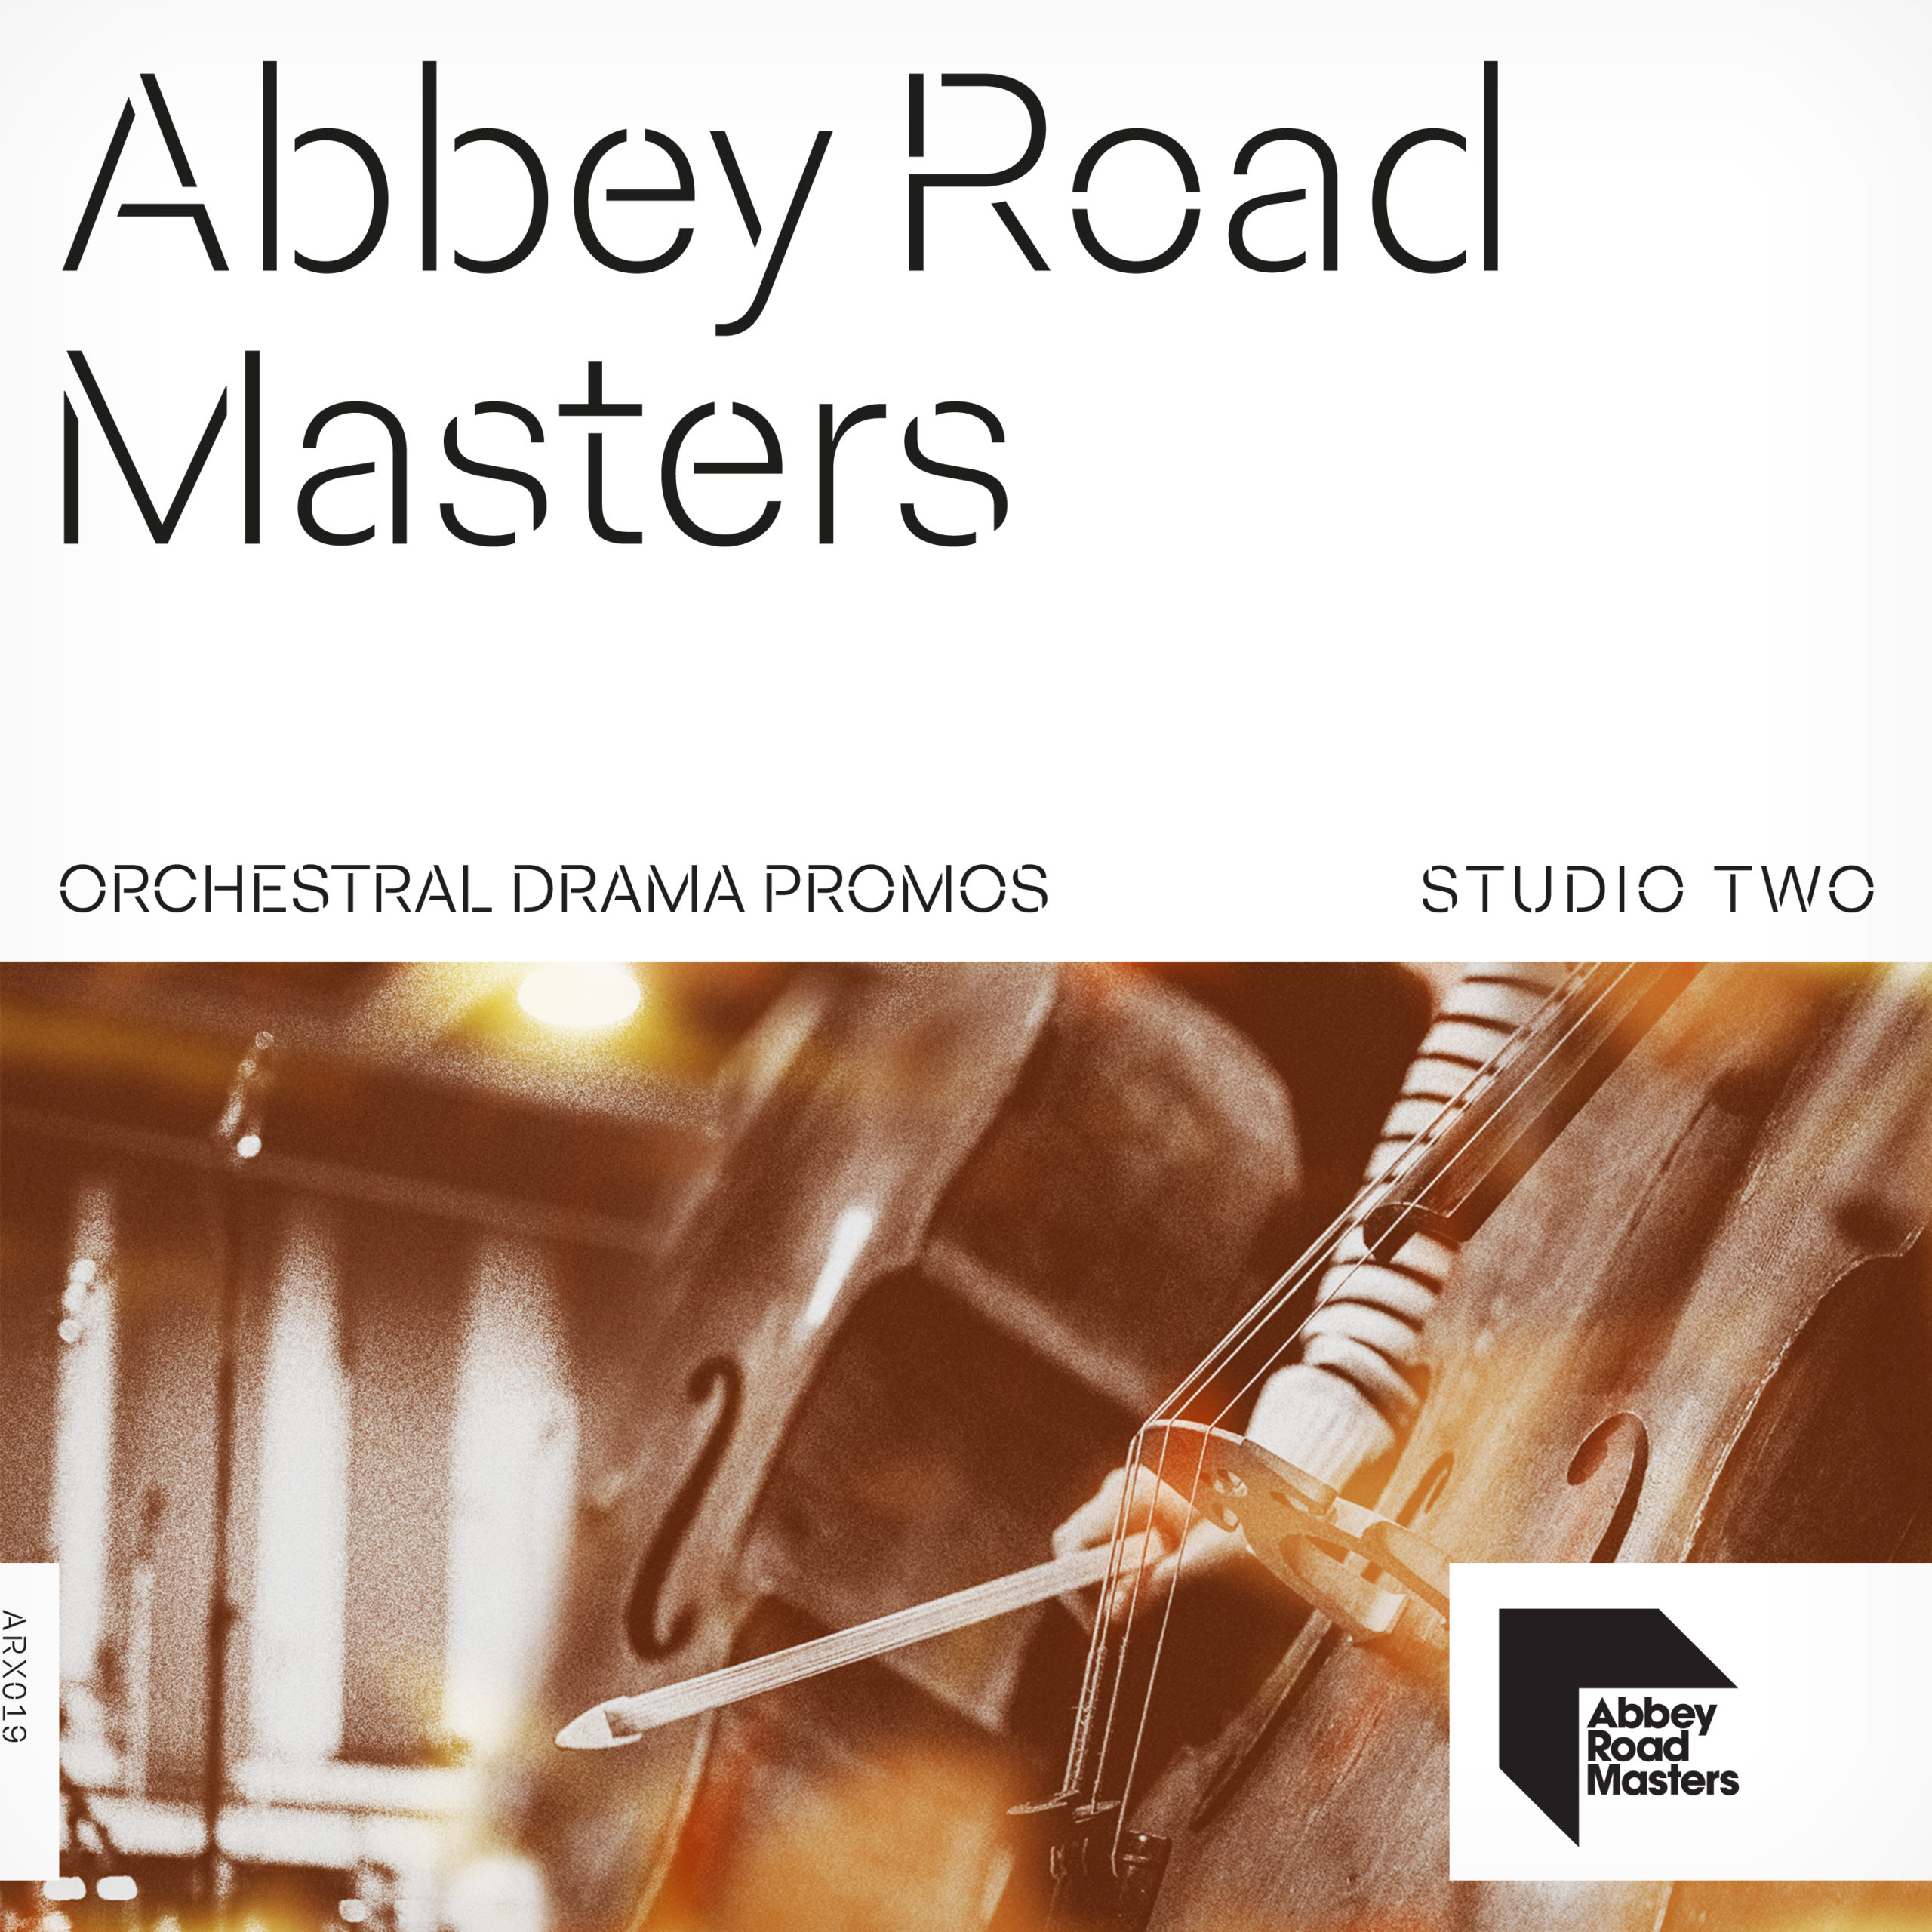 Abbey Road Masters: Orchestral Drama Promos